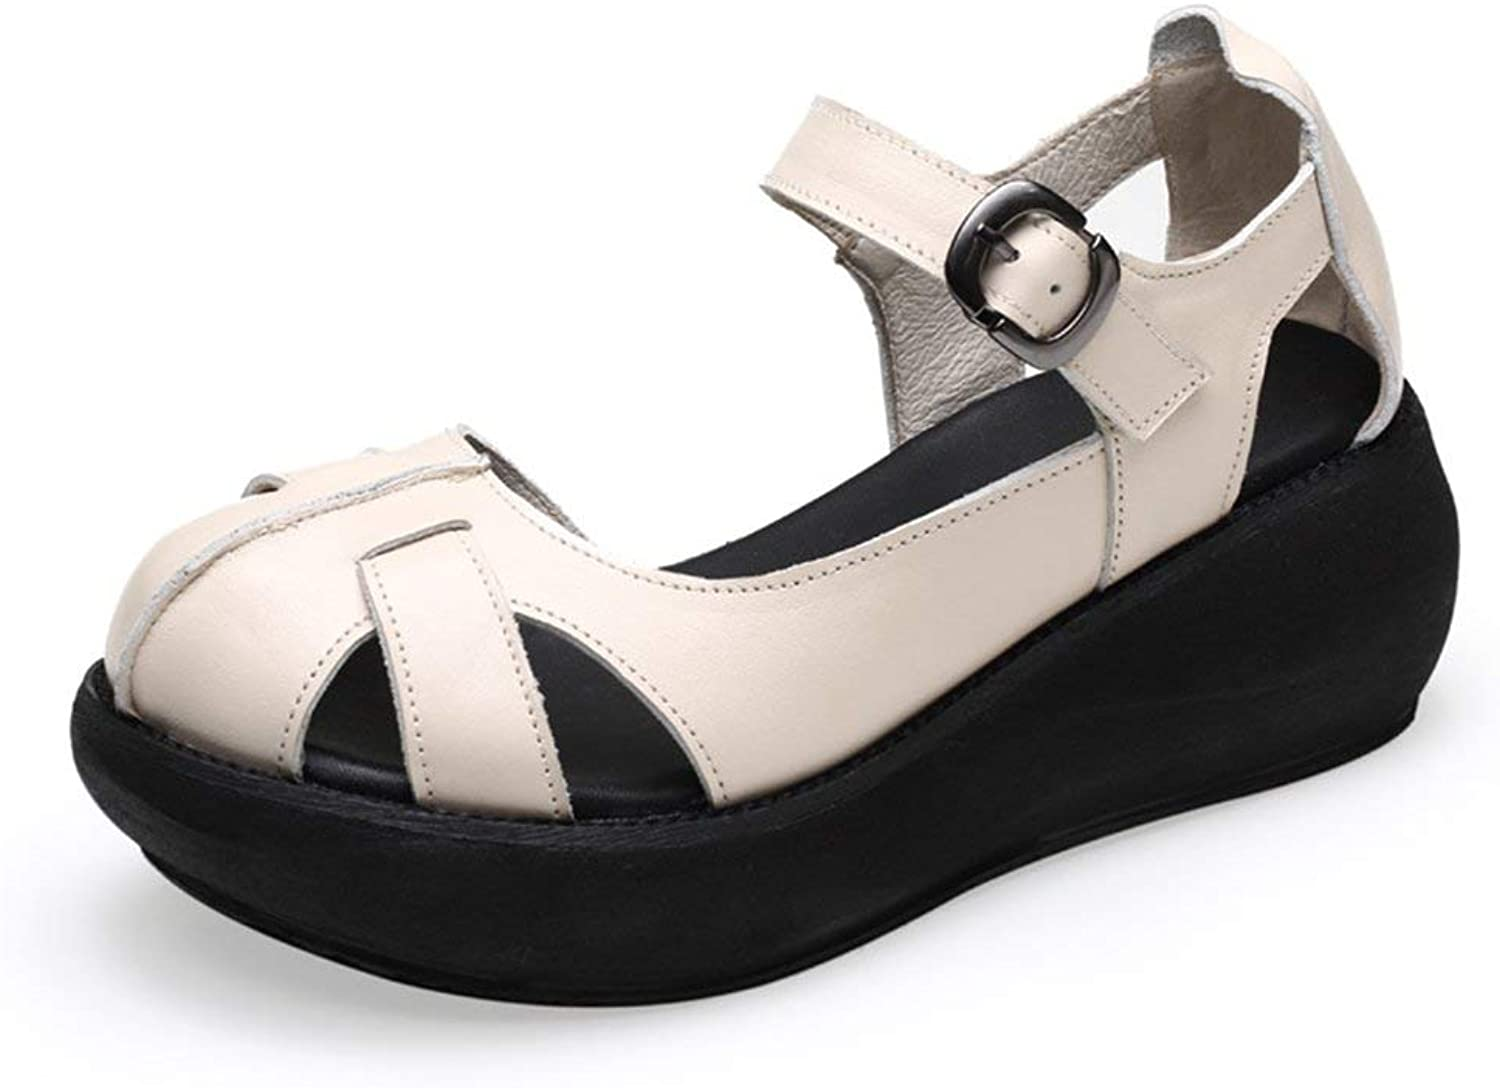 Comfortable and beautiful ladies sandals Sandals Female Off White Polyurethane Materials High Heel Single shoes